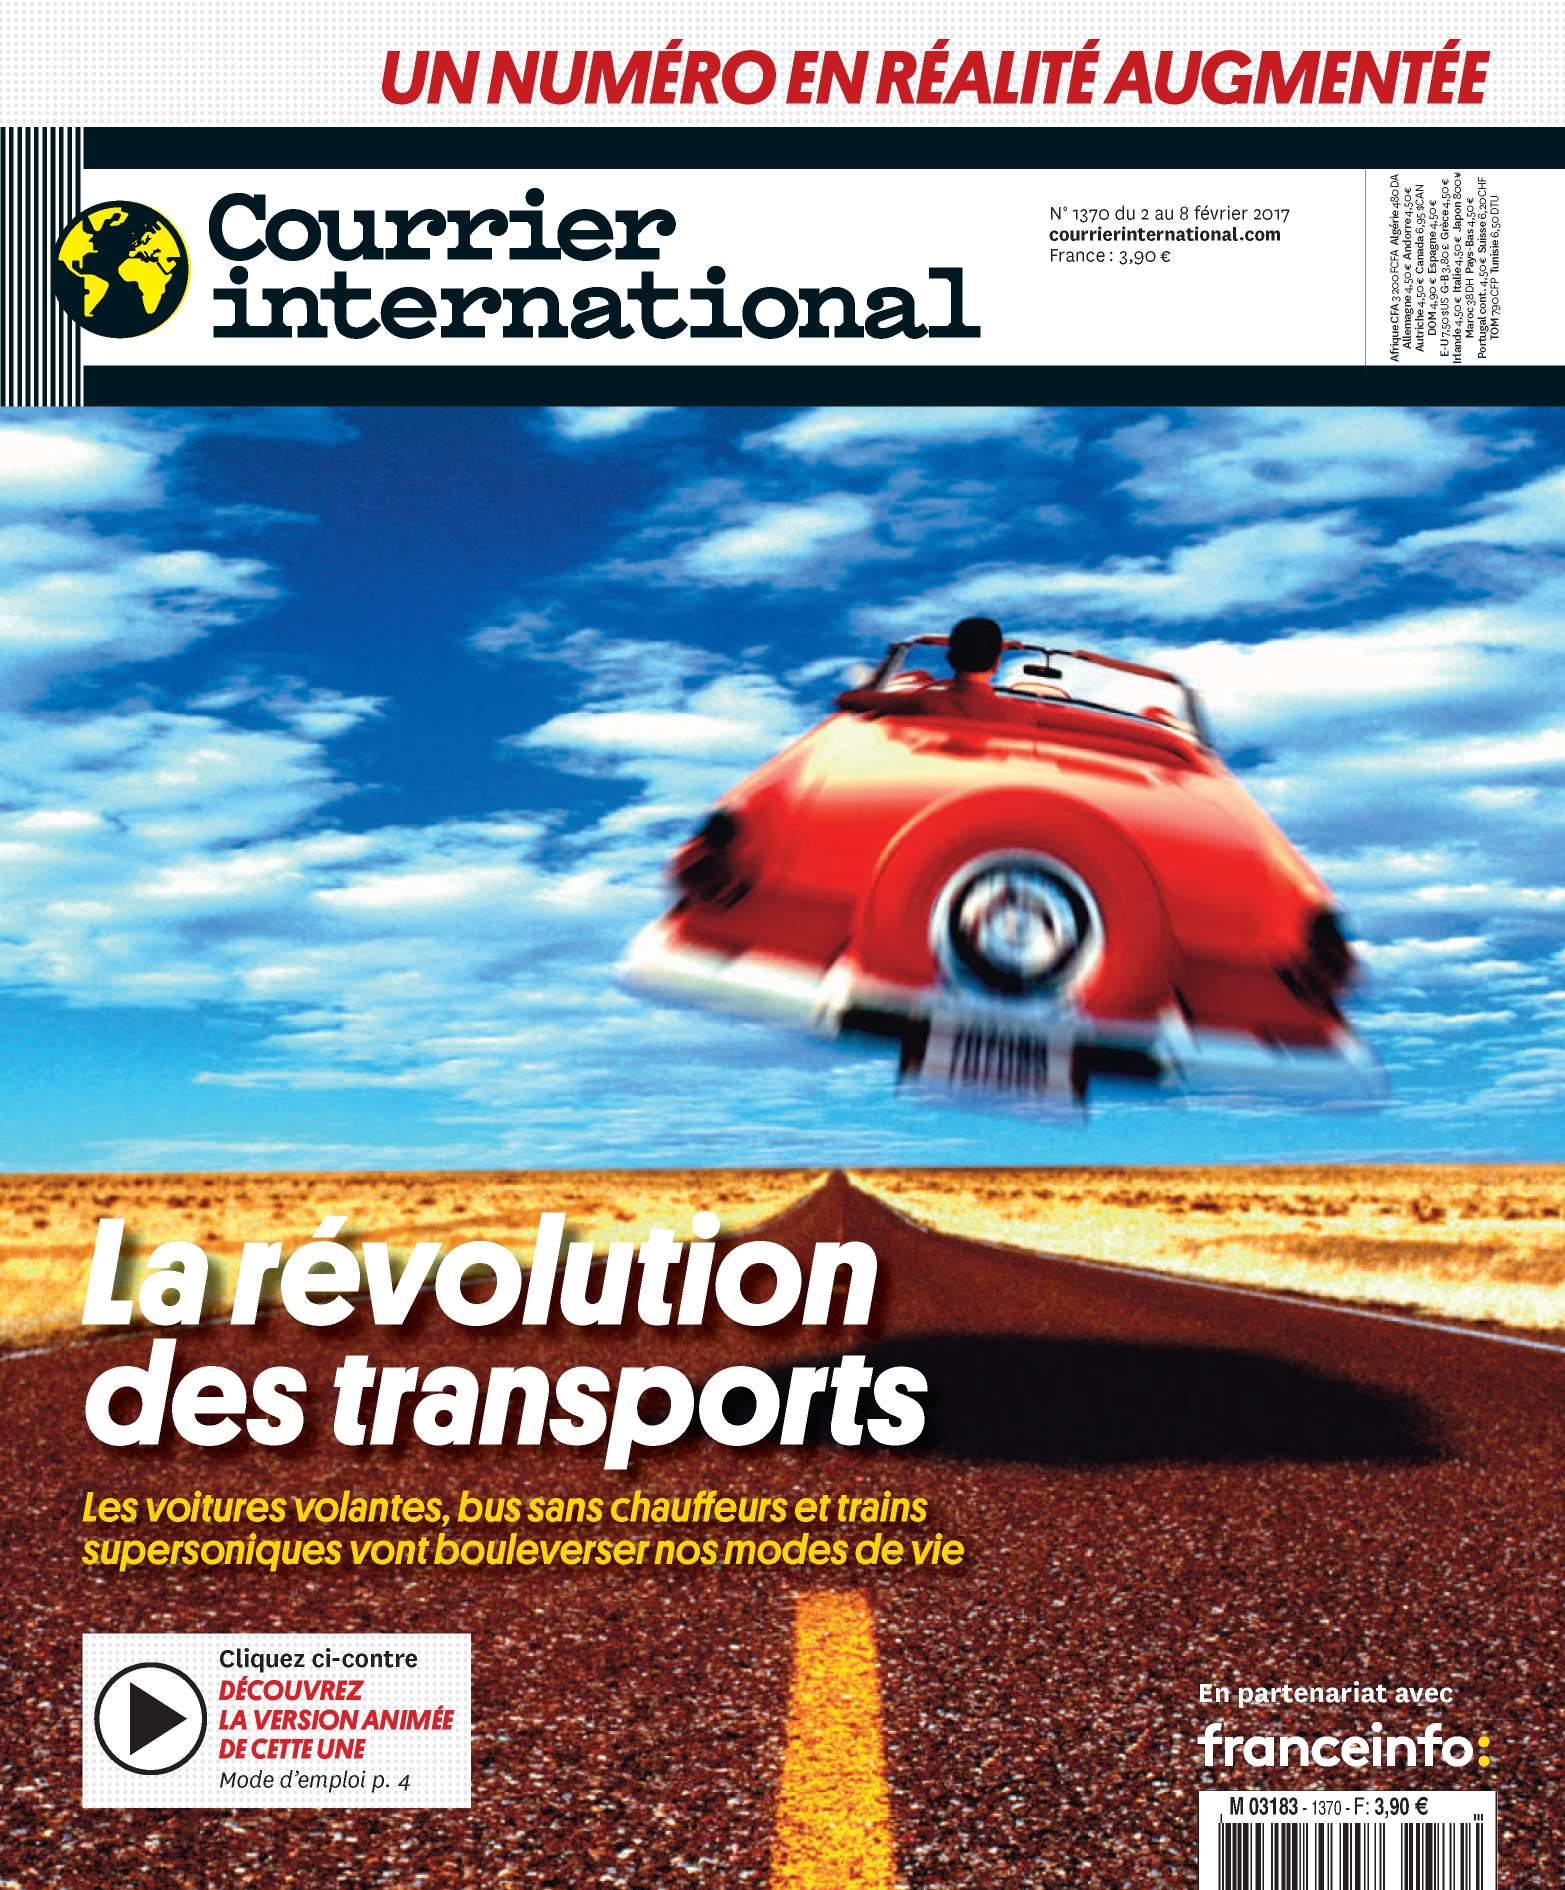 Courrier international N°1370 - 2 au 8 Février 2017